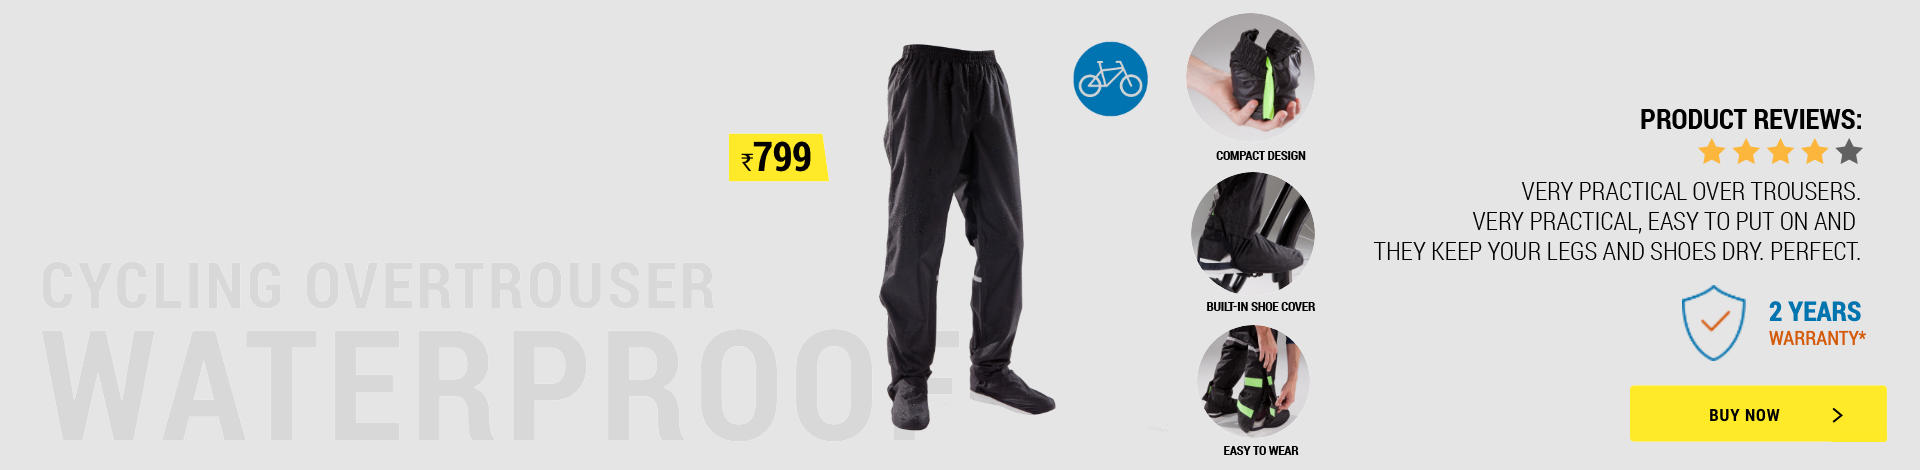 Rain Pants, water proof pant, cycling rain pant, over trousers